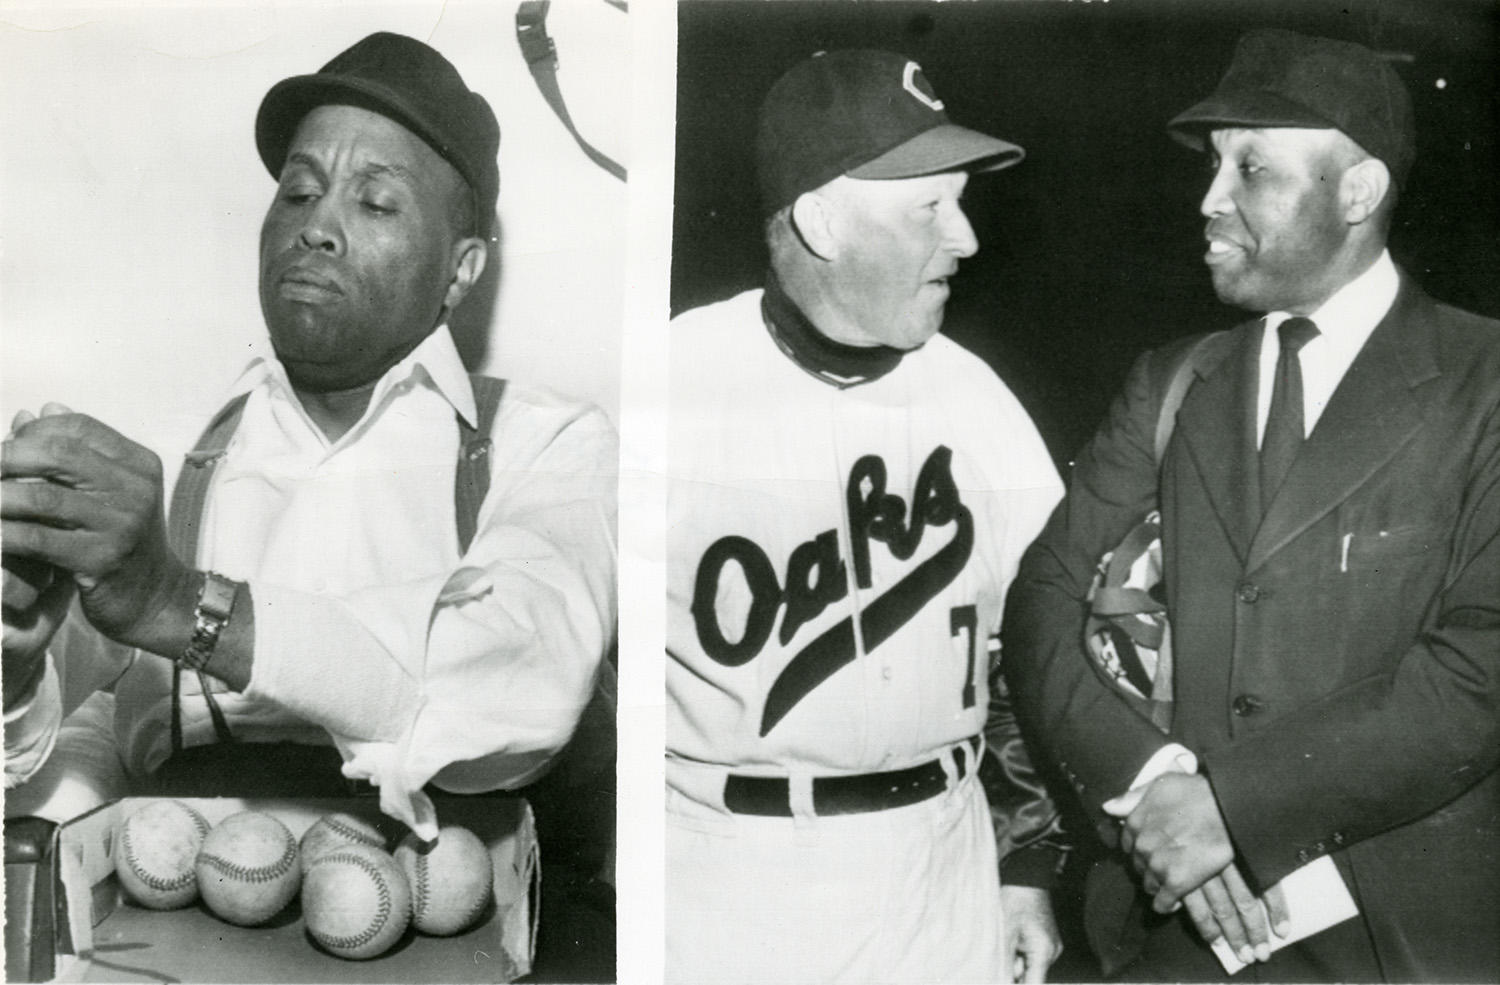 """On the left, Emmett Ashford roughens up baseballs before a game. On the right, he talks with Oakland Oaks manager Charlie Dressen. <a href=""""http://collection.baseballhall.org/islandora/object/islandora%3A298344"""">PASTIME</a> (National Baseball Hall of Fame and Museum)"""